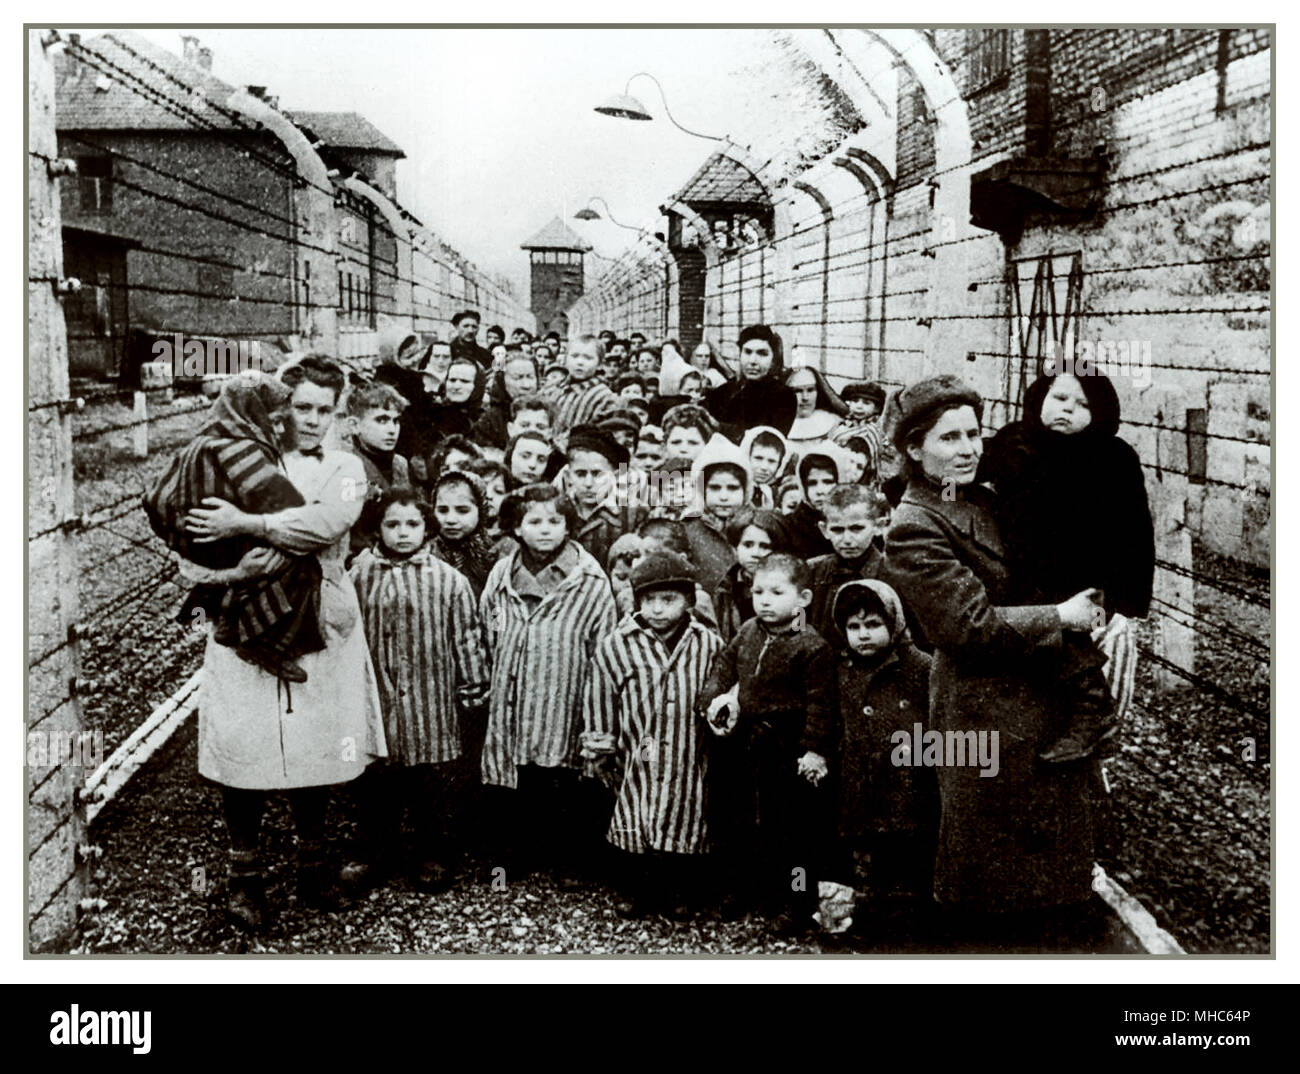 AUSCHWITZ SURVIVORS CHILDREN BABIES WOMEN STRIPED UNIFORM staring without emotion to their liberators. A still frame of horror from Auschwitz Birkenau Nazi concentration camp. Liberation January 27 1945. - Stock Image